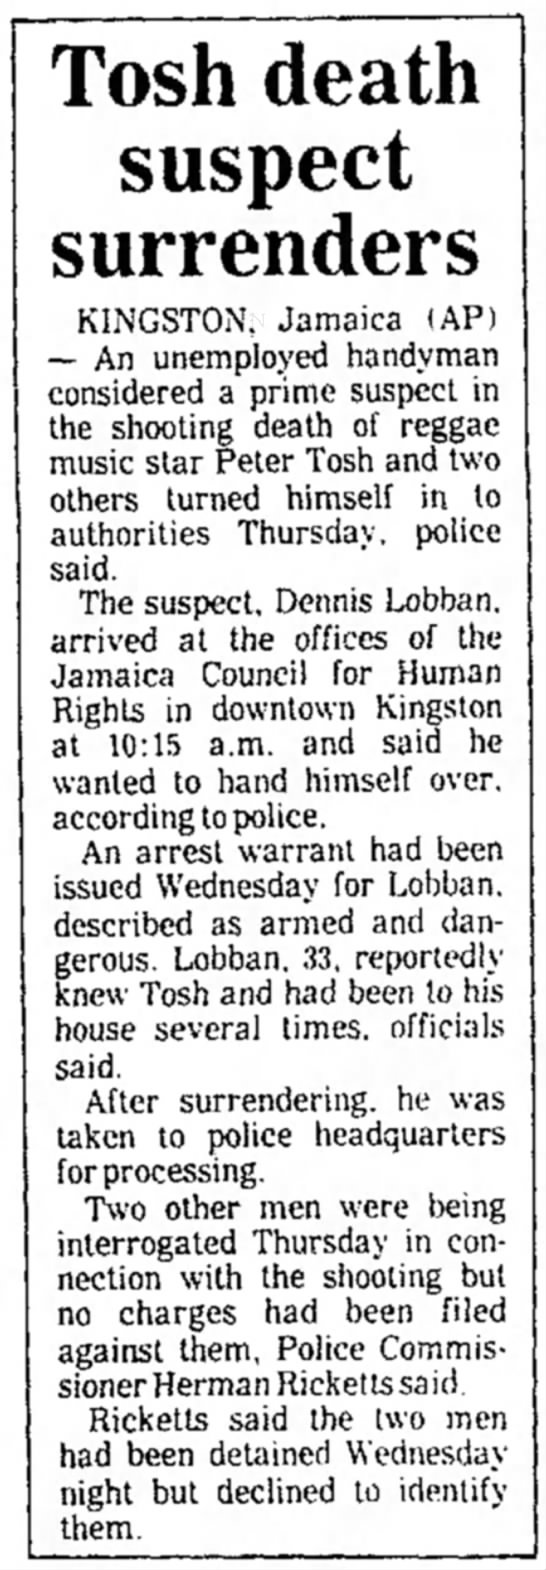 Tosh death suspect surrenders (1987) -